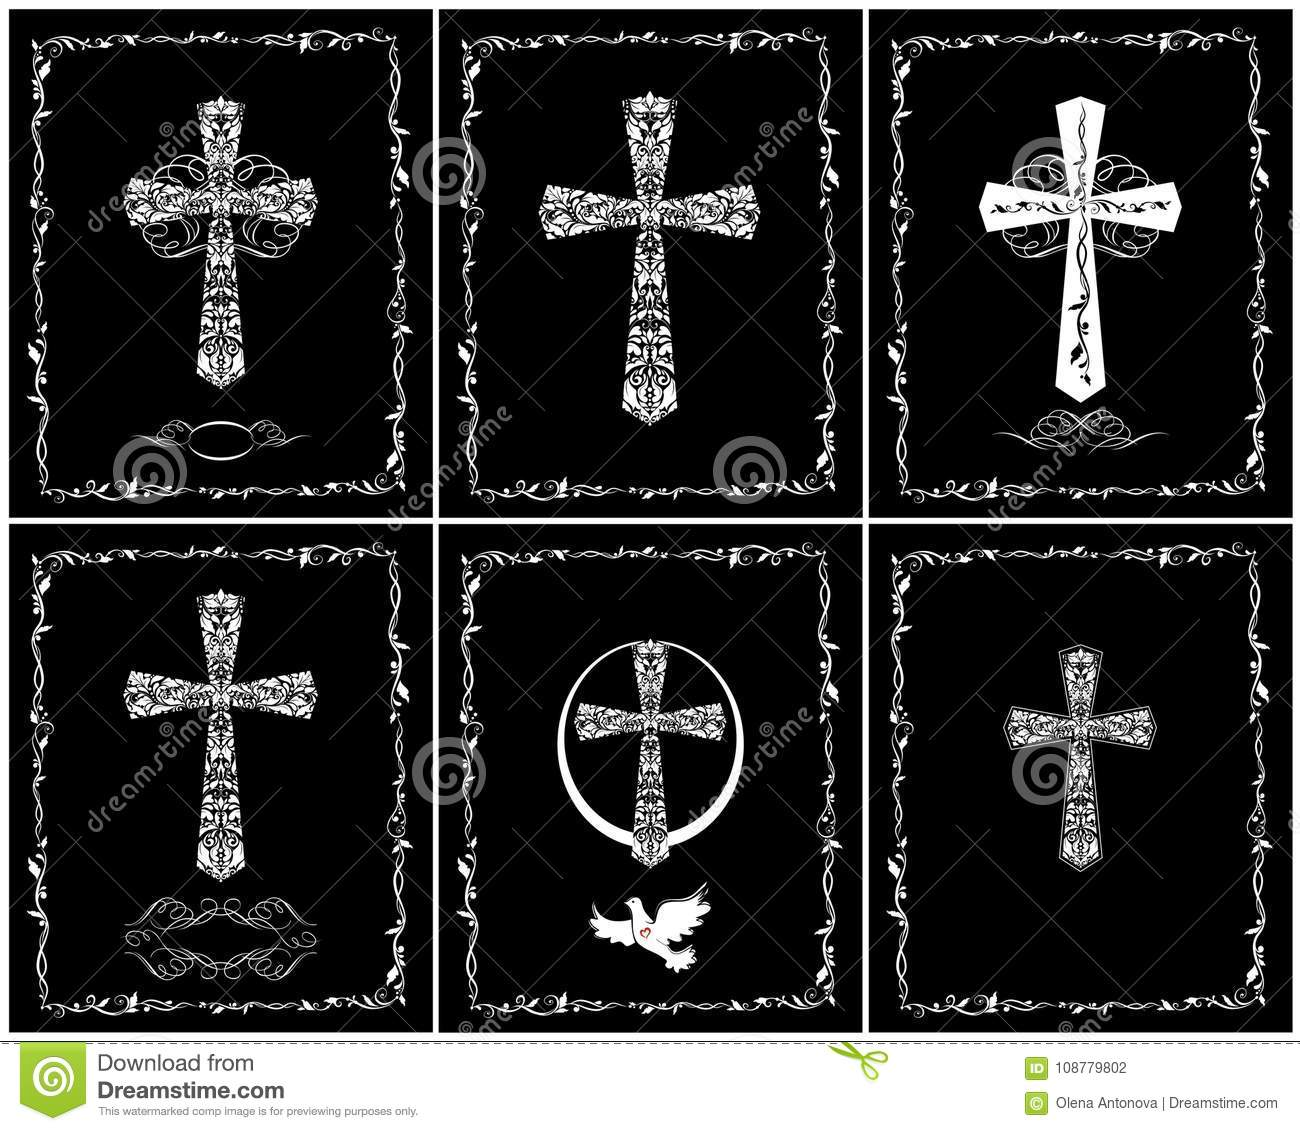 Black And White Catholic Greeting Cards For Baptism And Easter